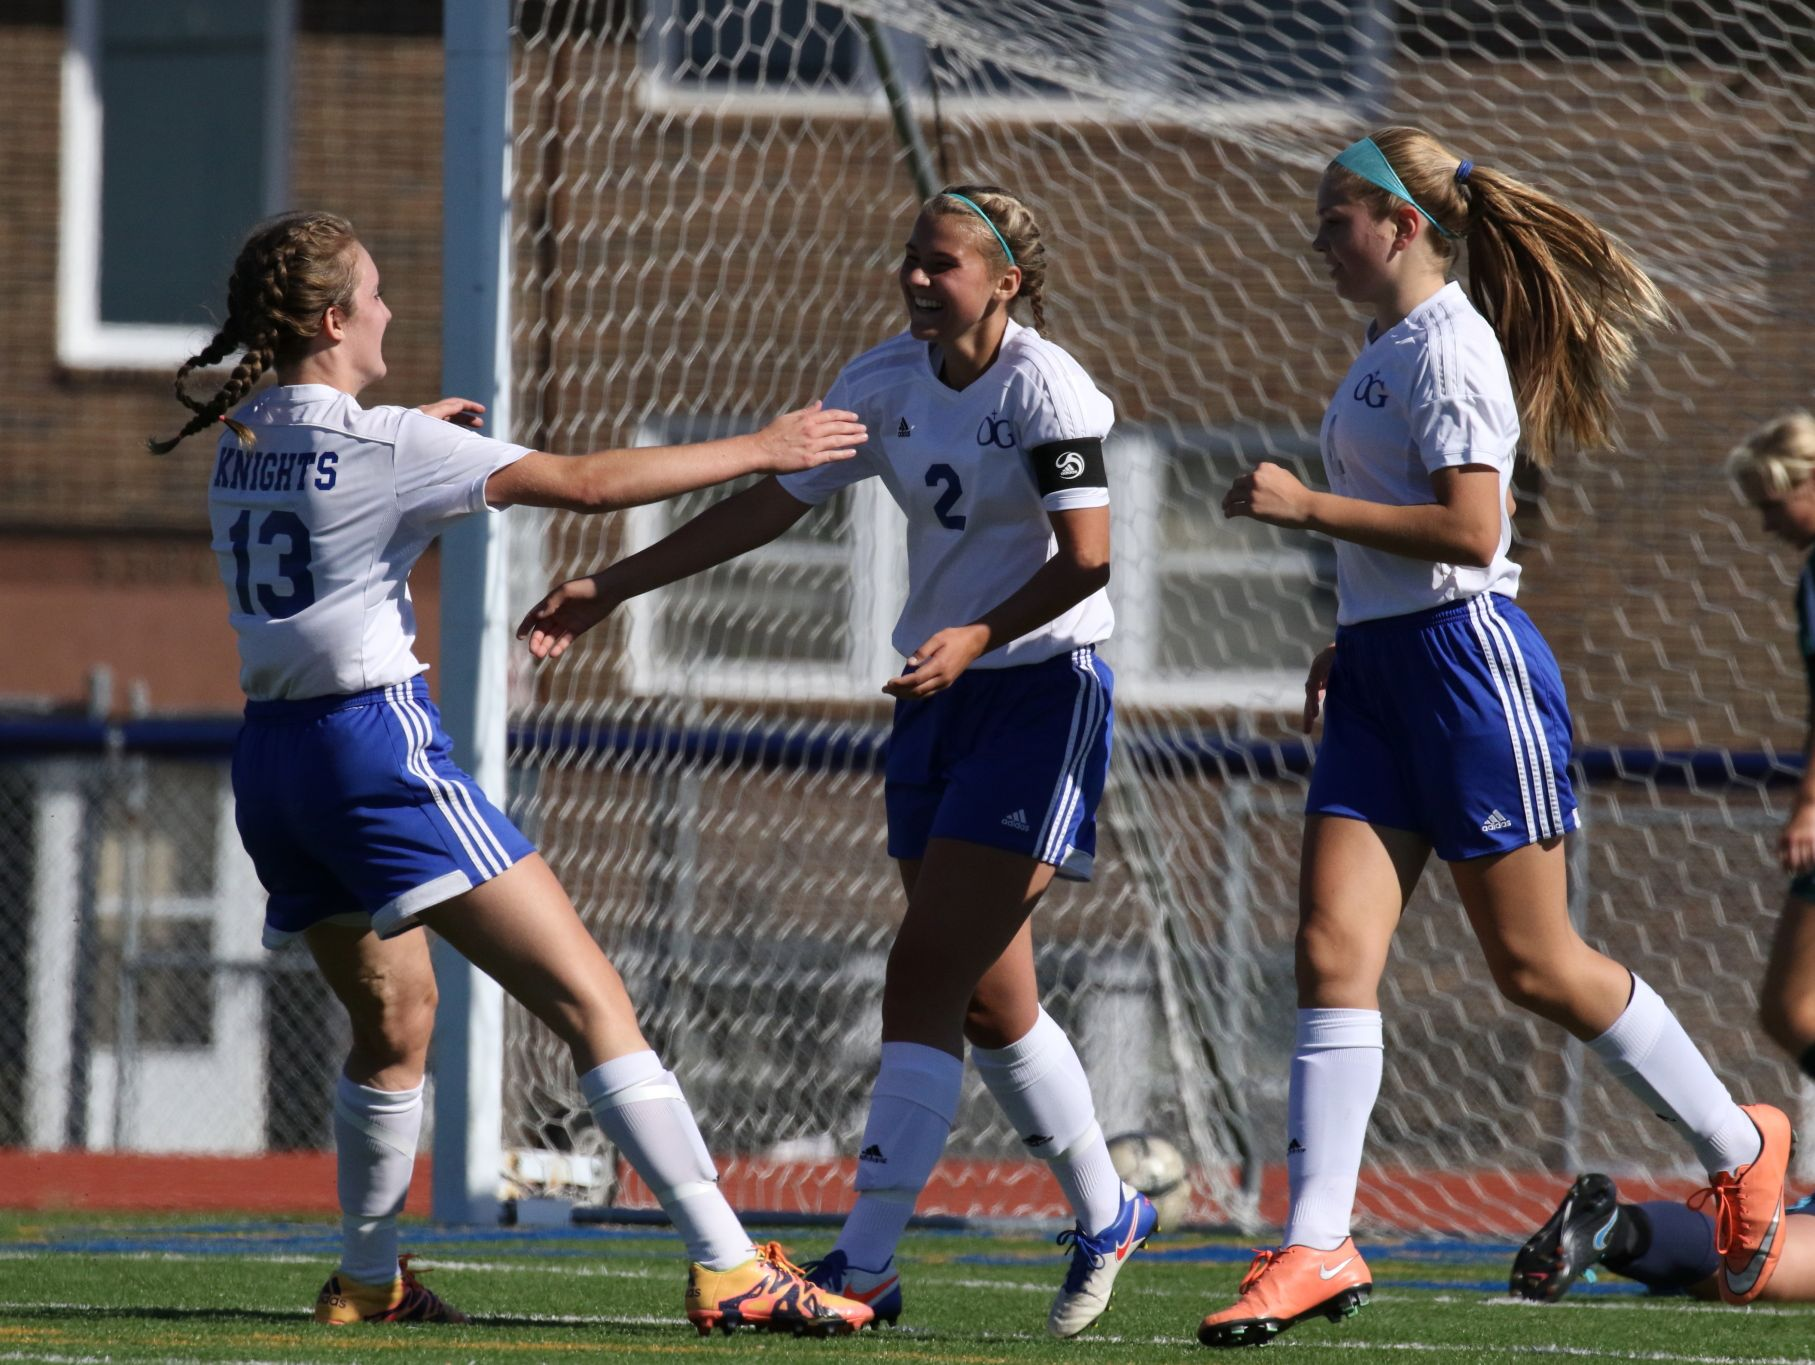 Izzy Hedge (2) of O'Gorman celebrates with Ashlee Beacom (13) and Katelyn Rush (4) after her second goal against Pierre during Wednesday's semi-final.